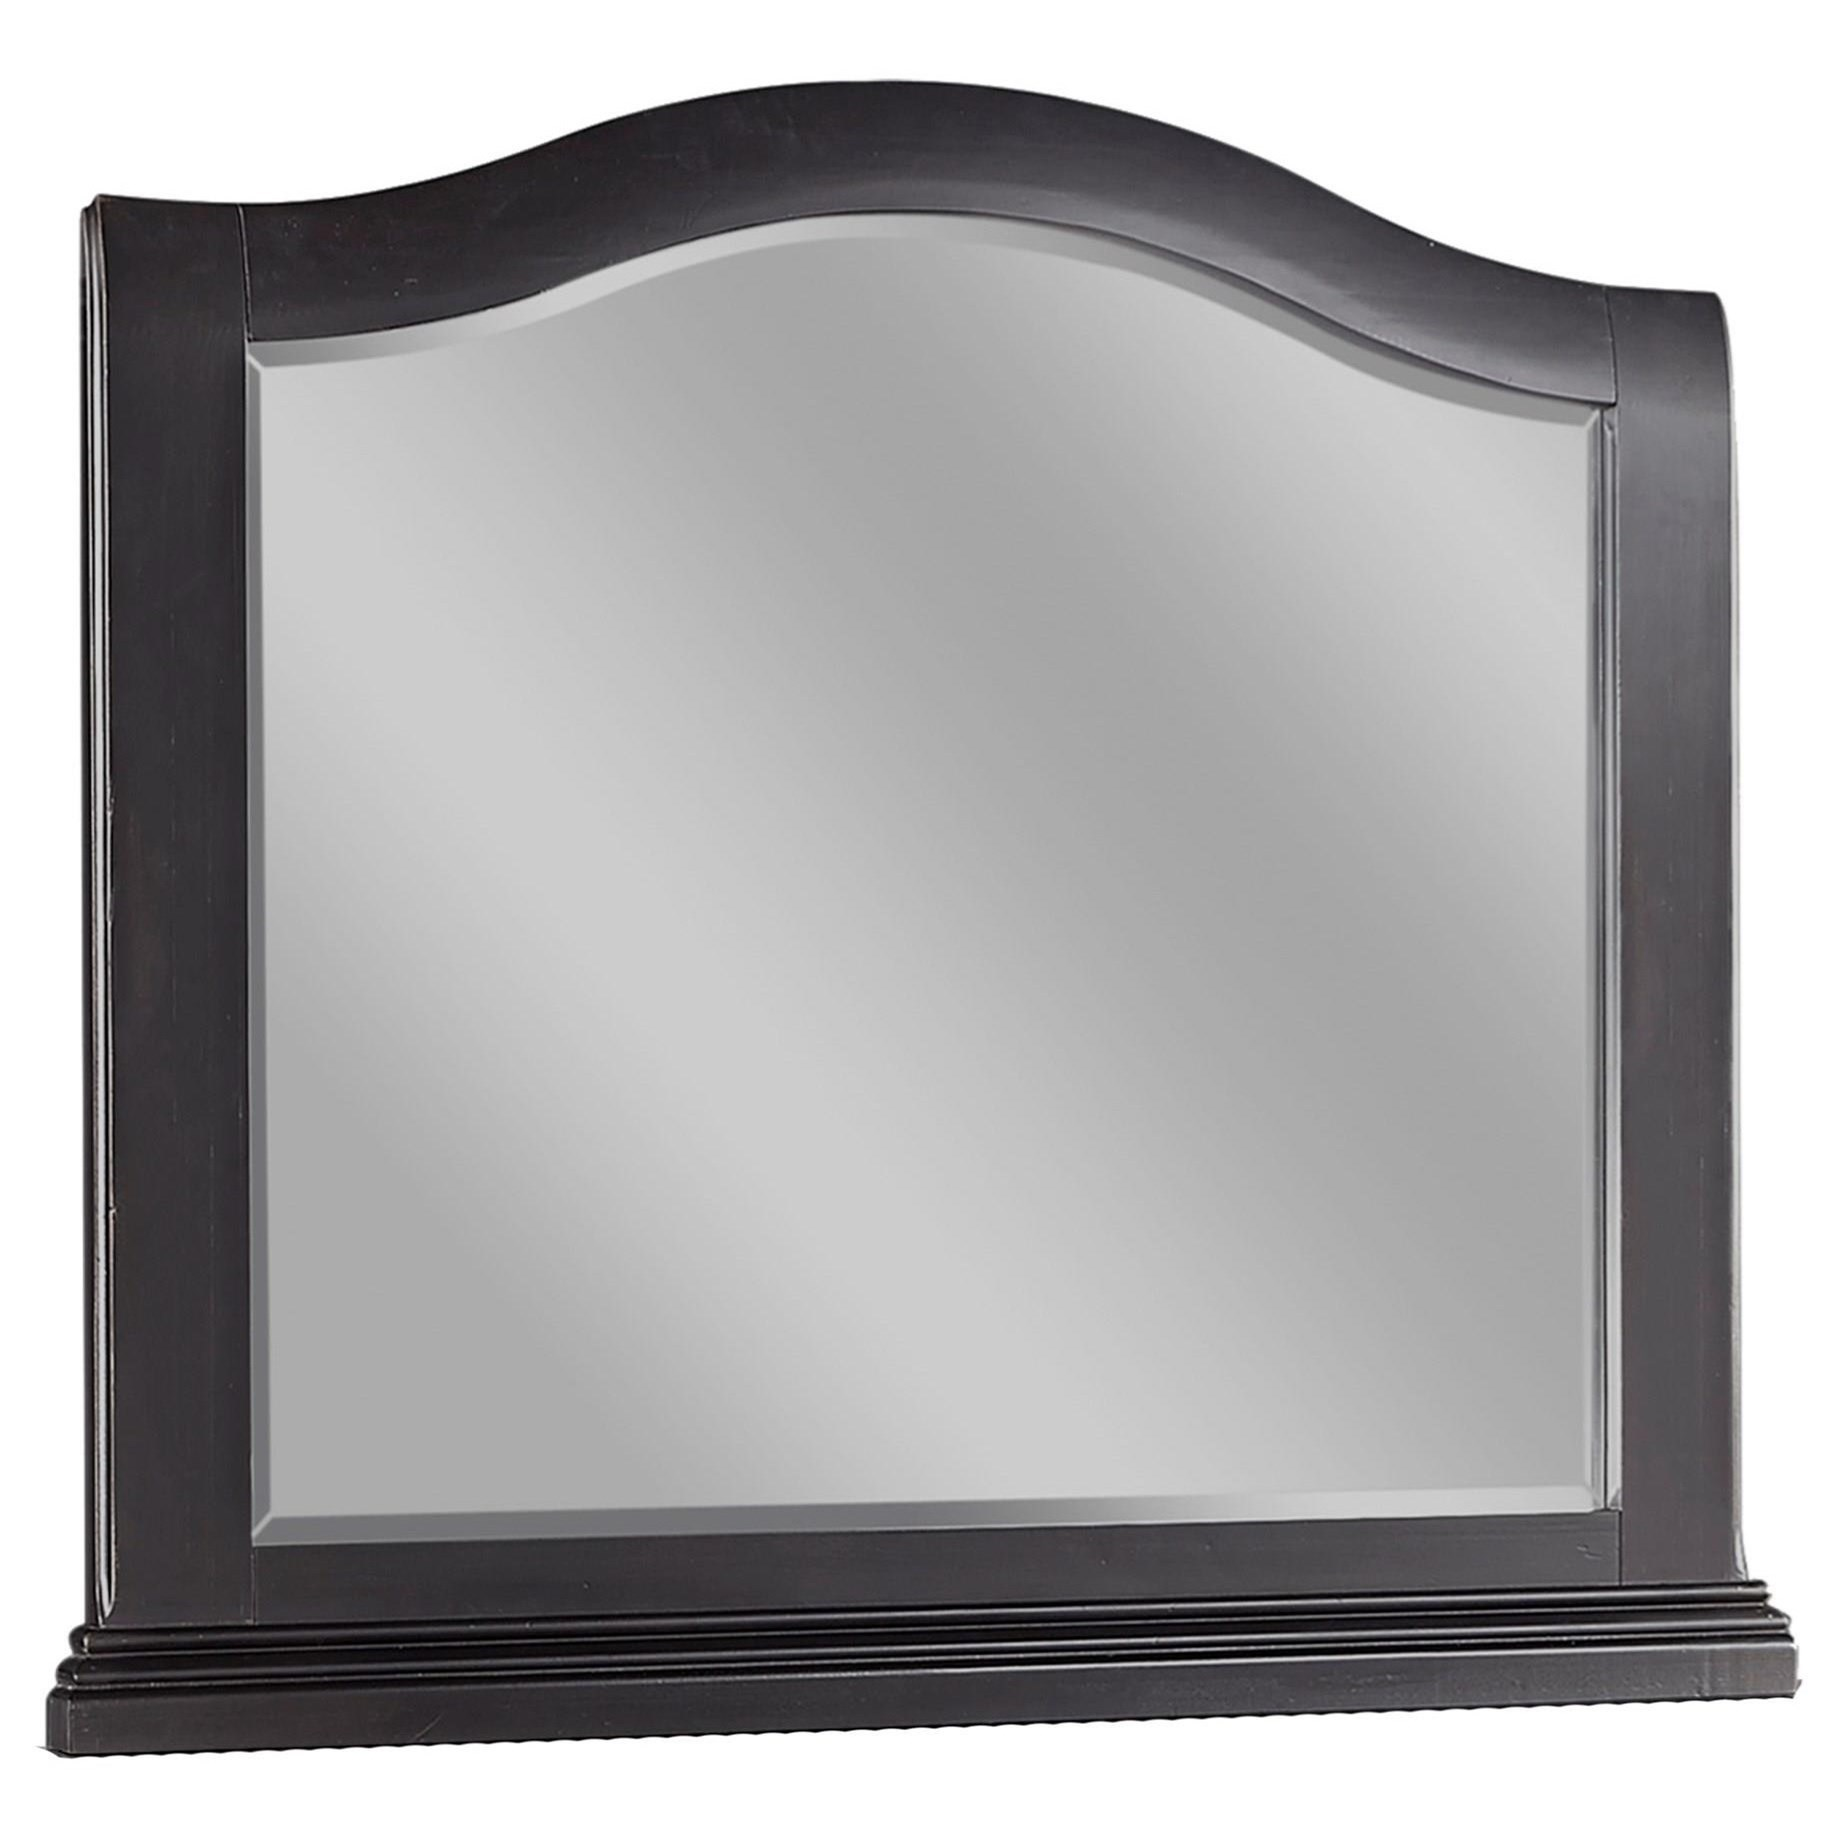 Transitional Landscape Mirror with Arched Design